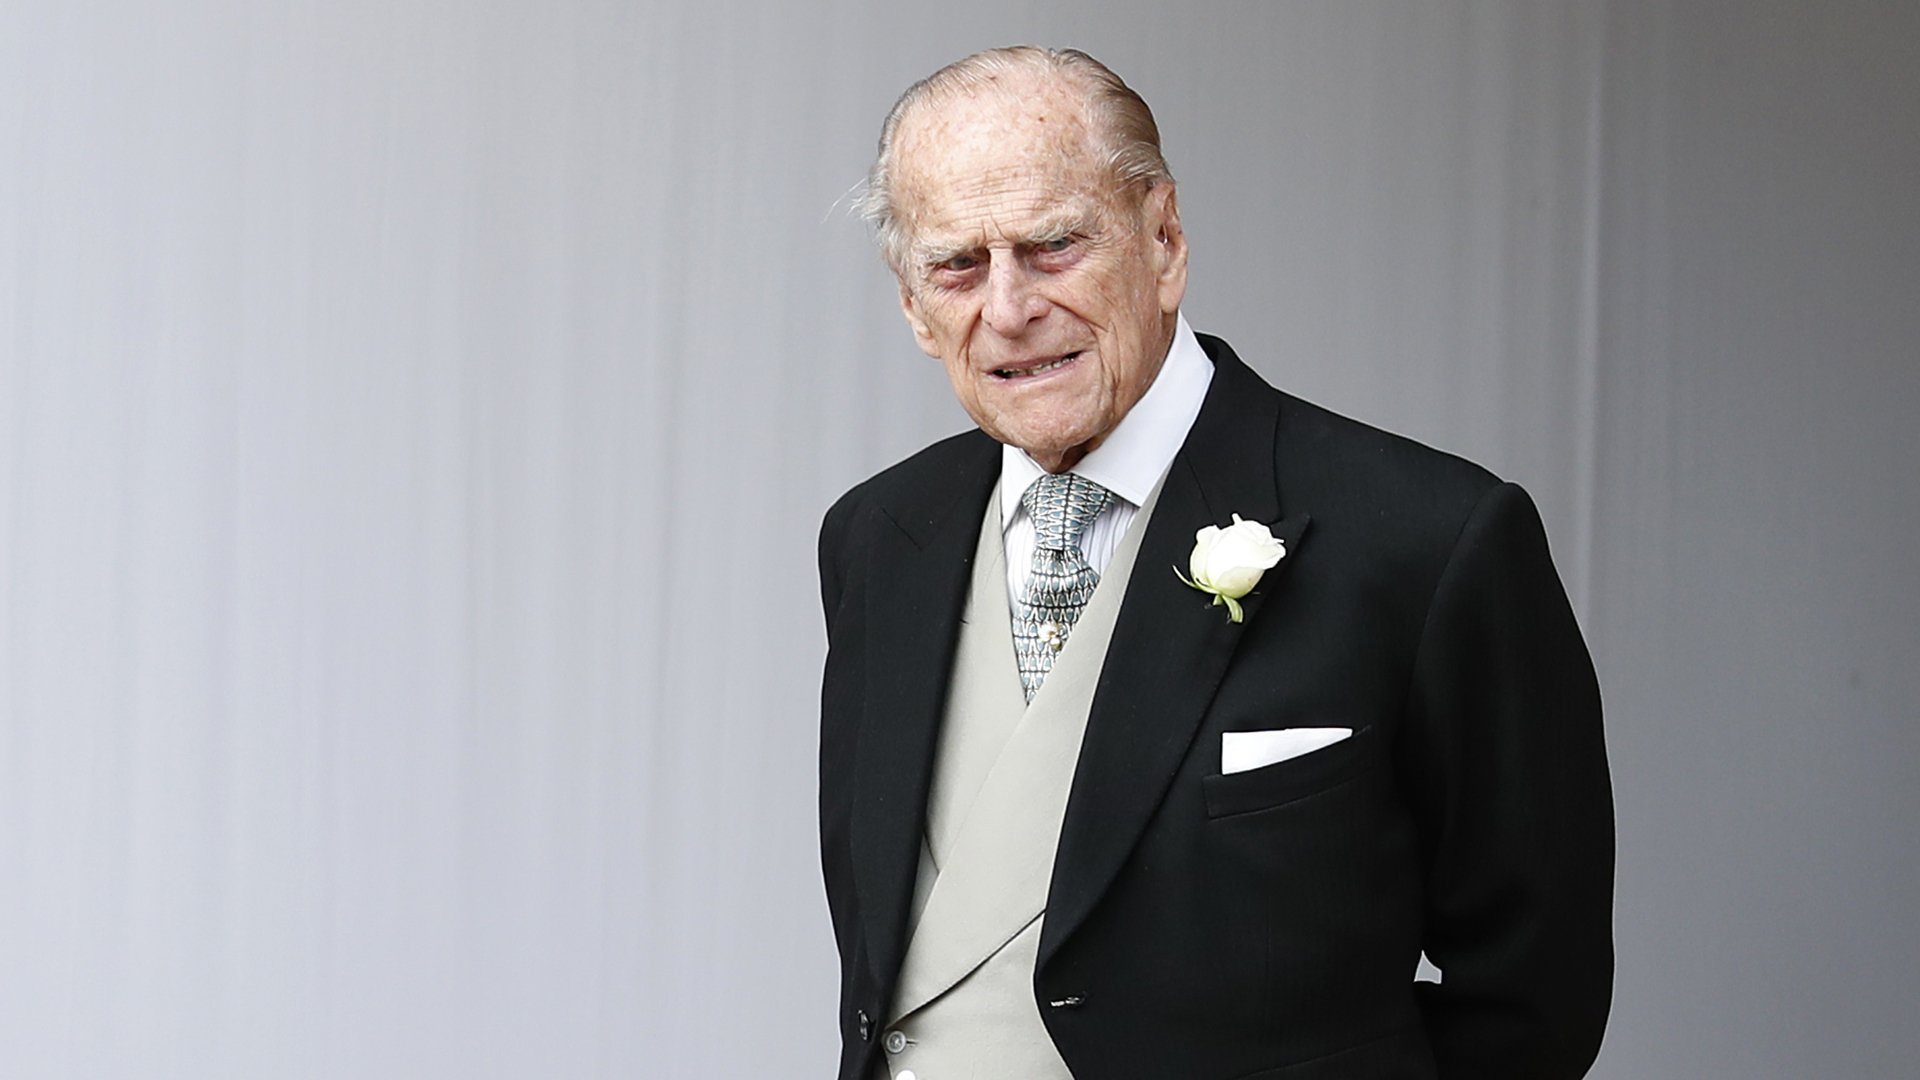 Prince Philip, Duke of Edinburgh attends the wedding of Princess Eugenie of York at St. George's Chapel on Oct. 12, 2018, in Windsor, England. (Credit: Alastair Grant - WPA Pool/Getty Images)